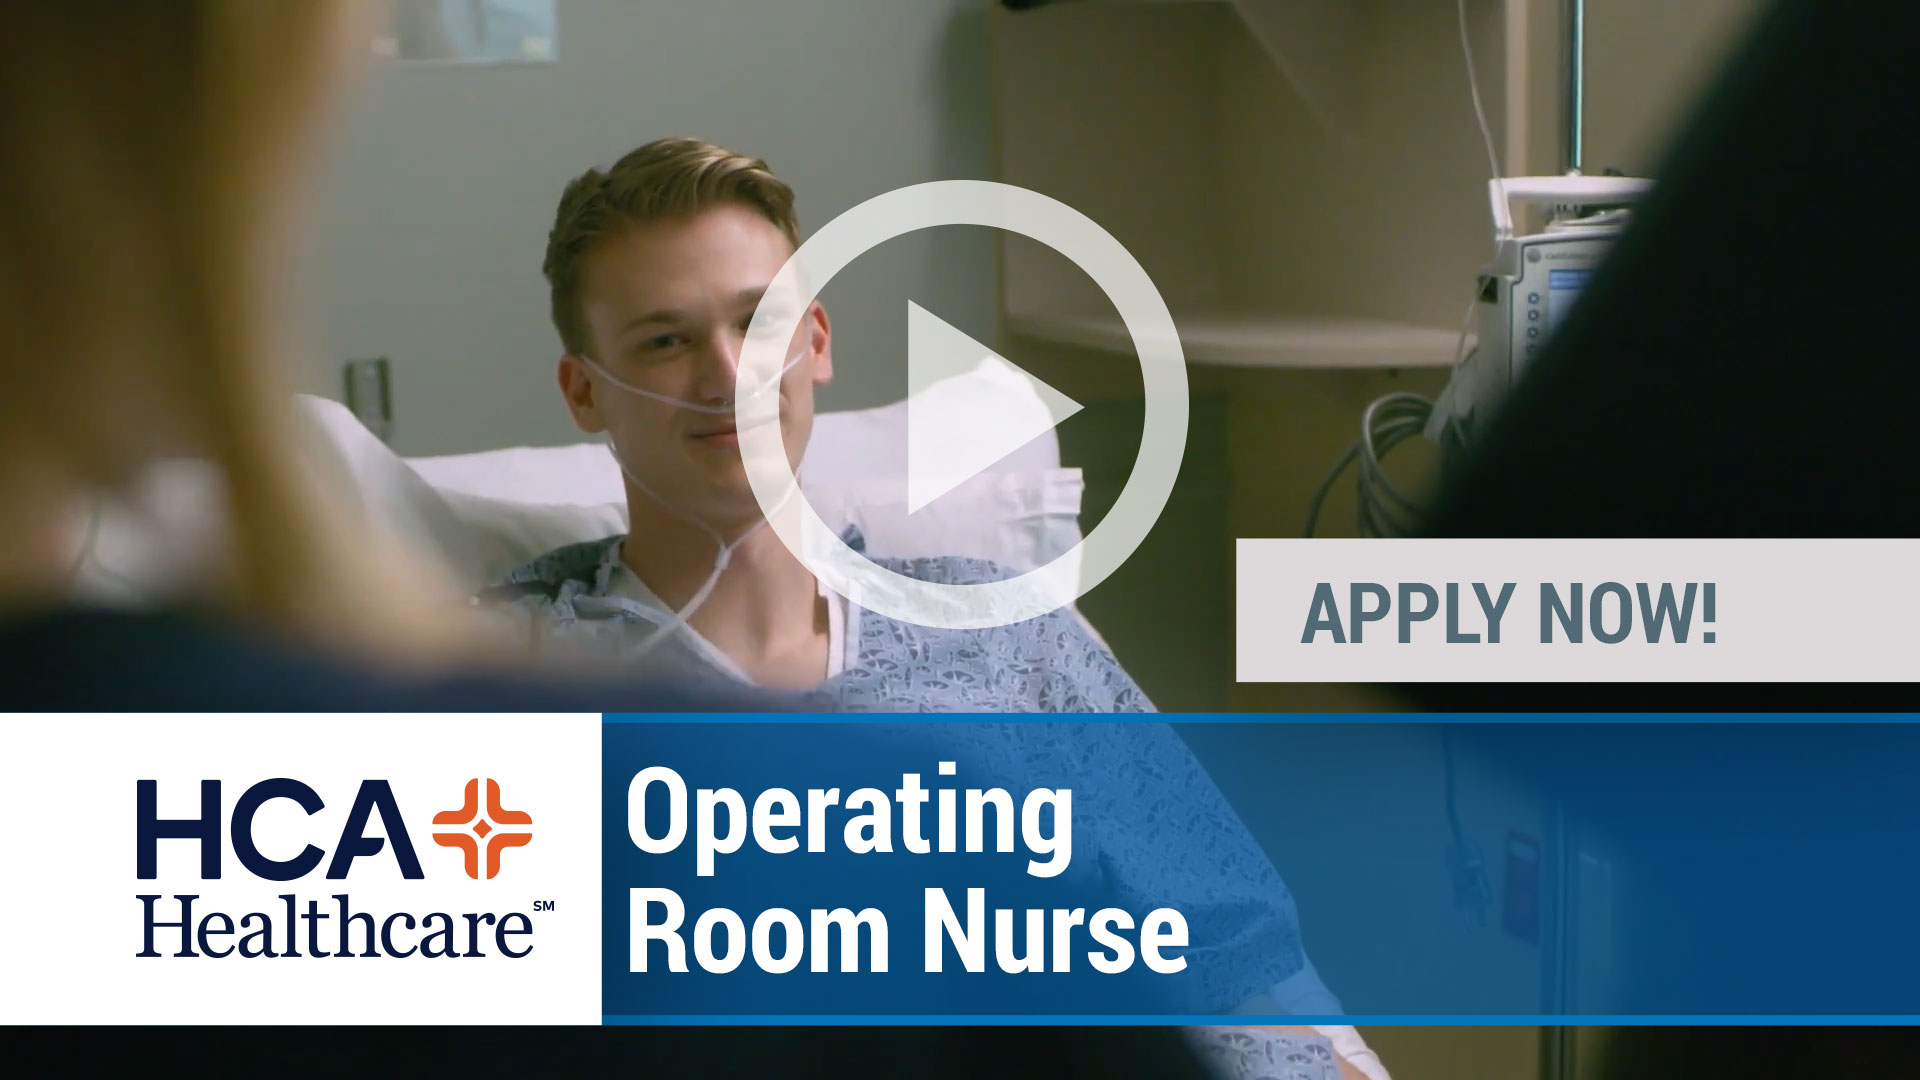 Watch our careers video for available job opening Operating Room Nurse in Savannah, Georgia